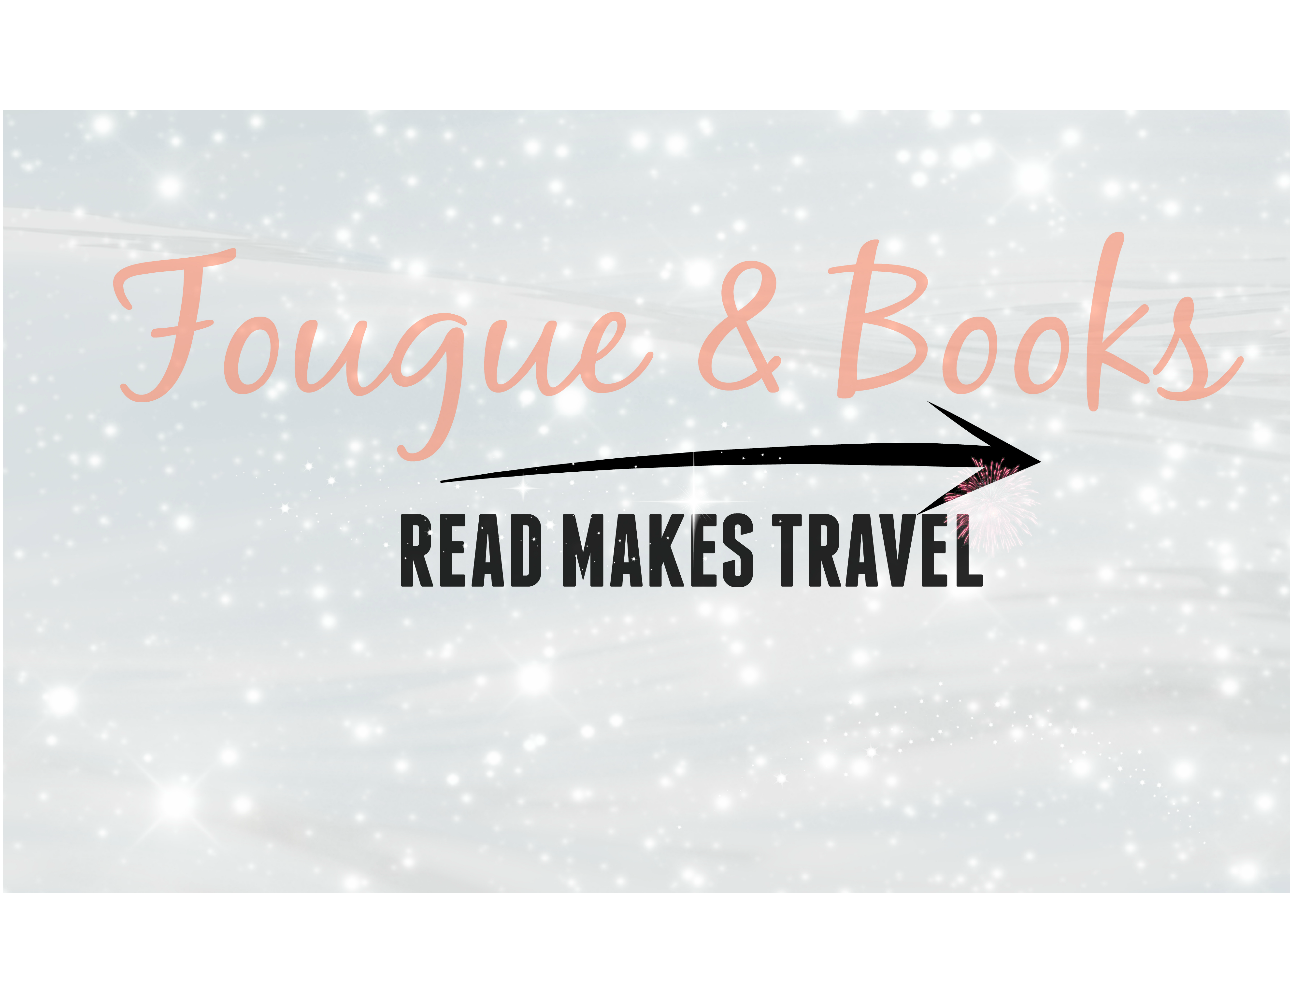 Fougue & Books